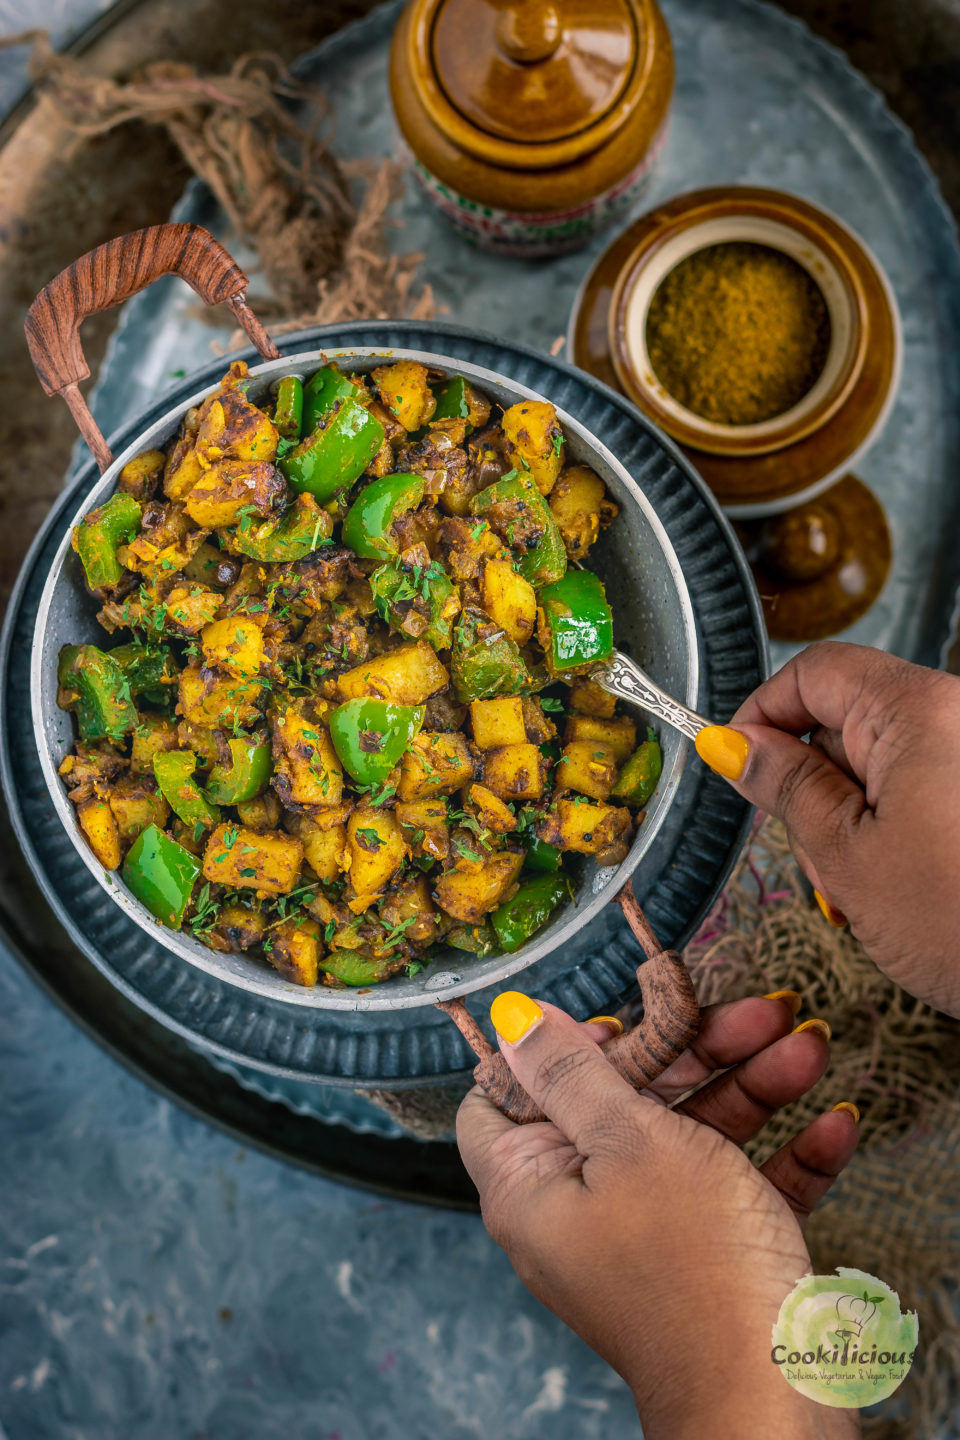 one hand digging a spoon into a kadai of Achari Aloo Capsicum while the other hand is holding the kadai